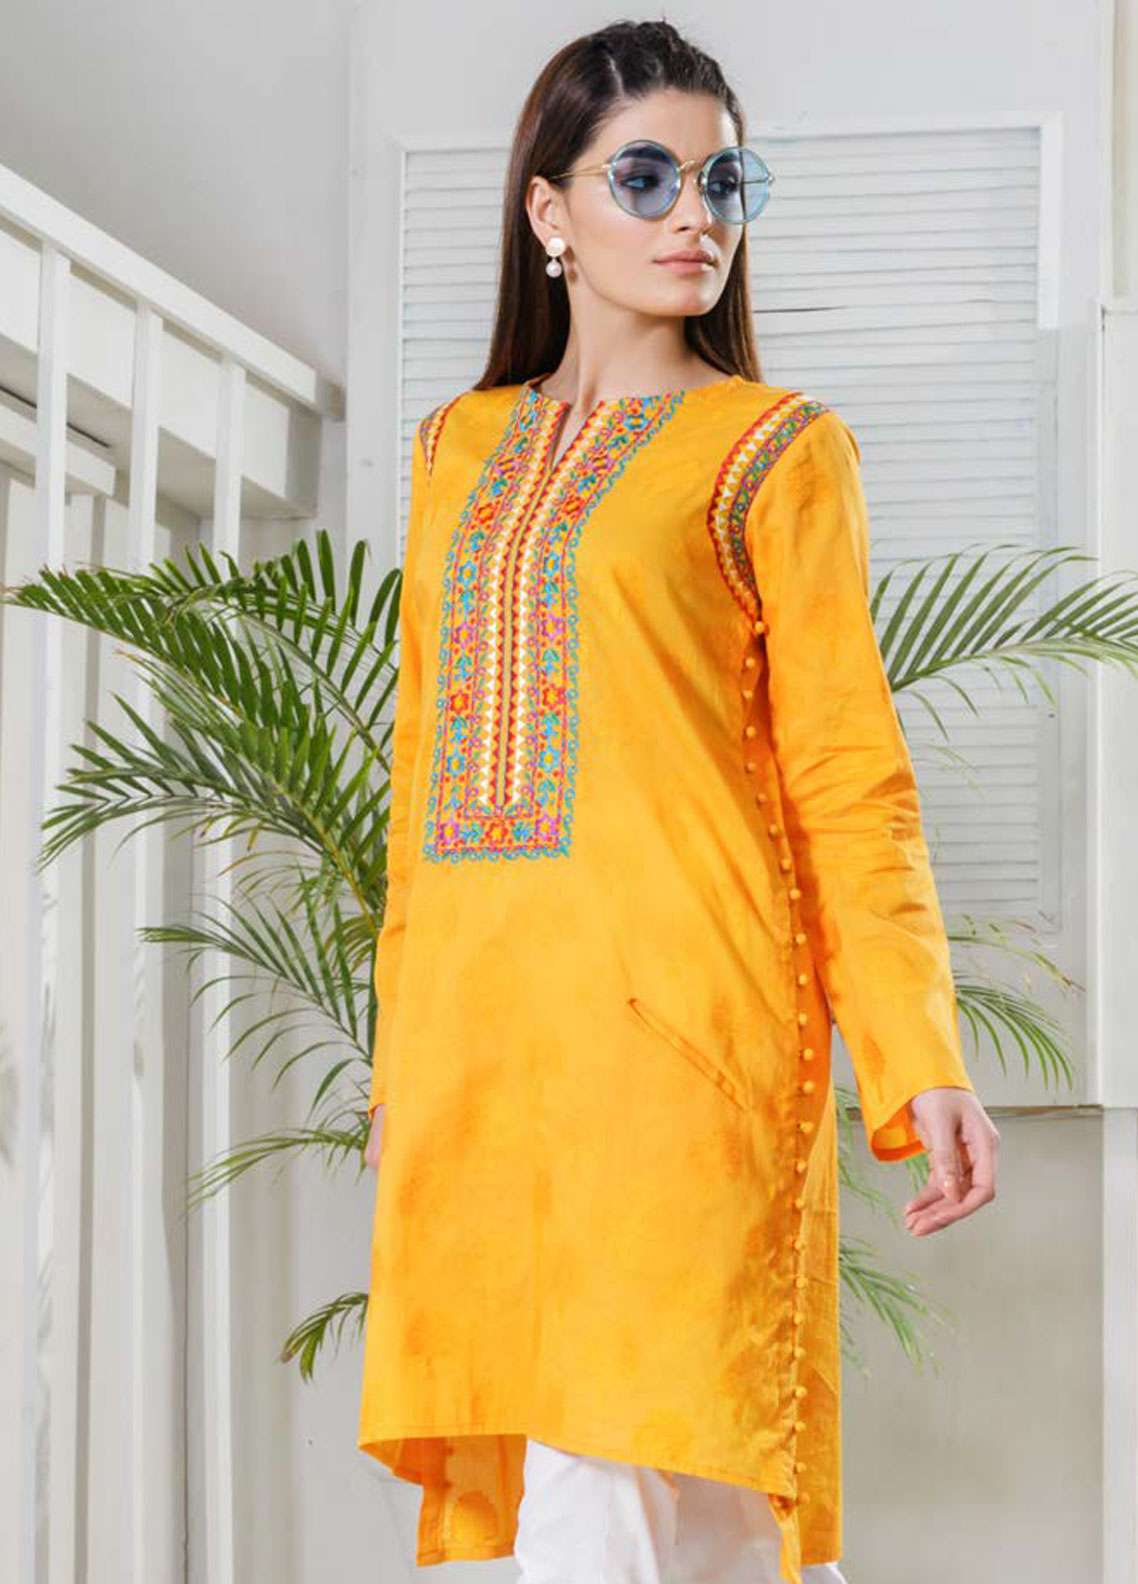 Orient Textile Embroidered Jacquard Unstitched Kurties OT19-L2 142 A - Spring / Summer Collection